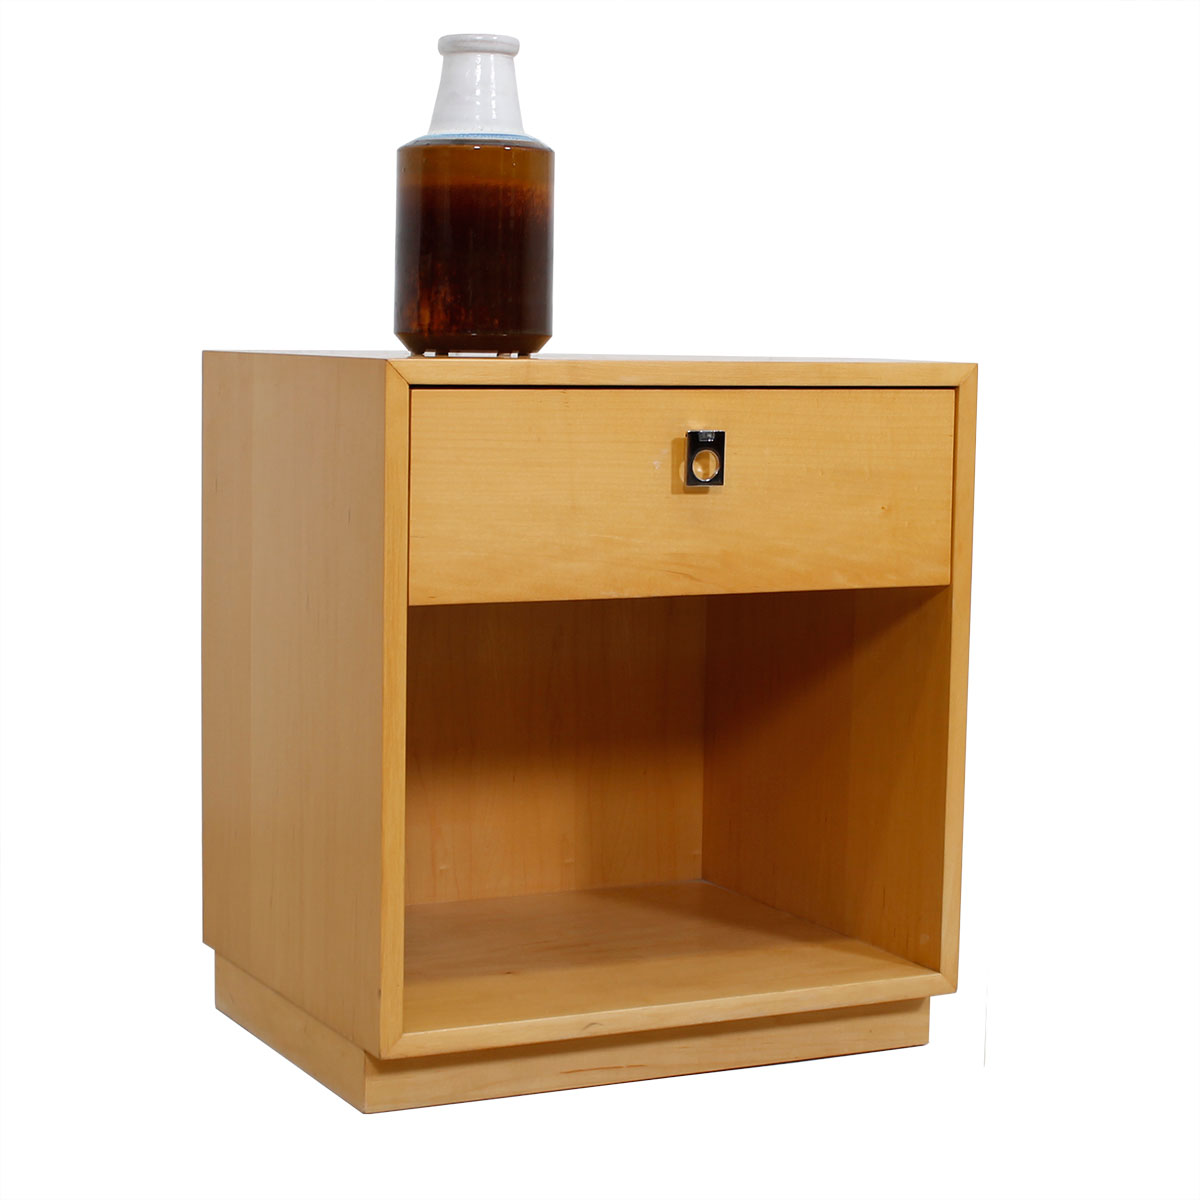 Jack Cartwright for Founders Blonde End Table / Nightstand